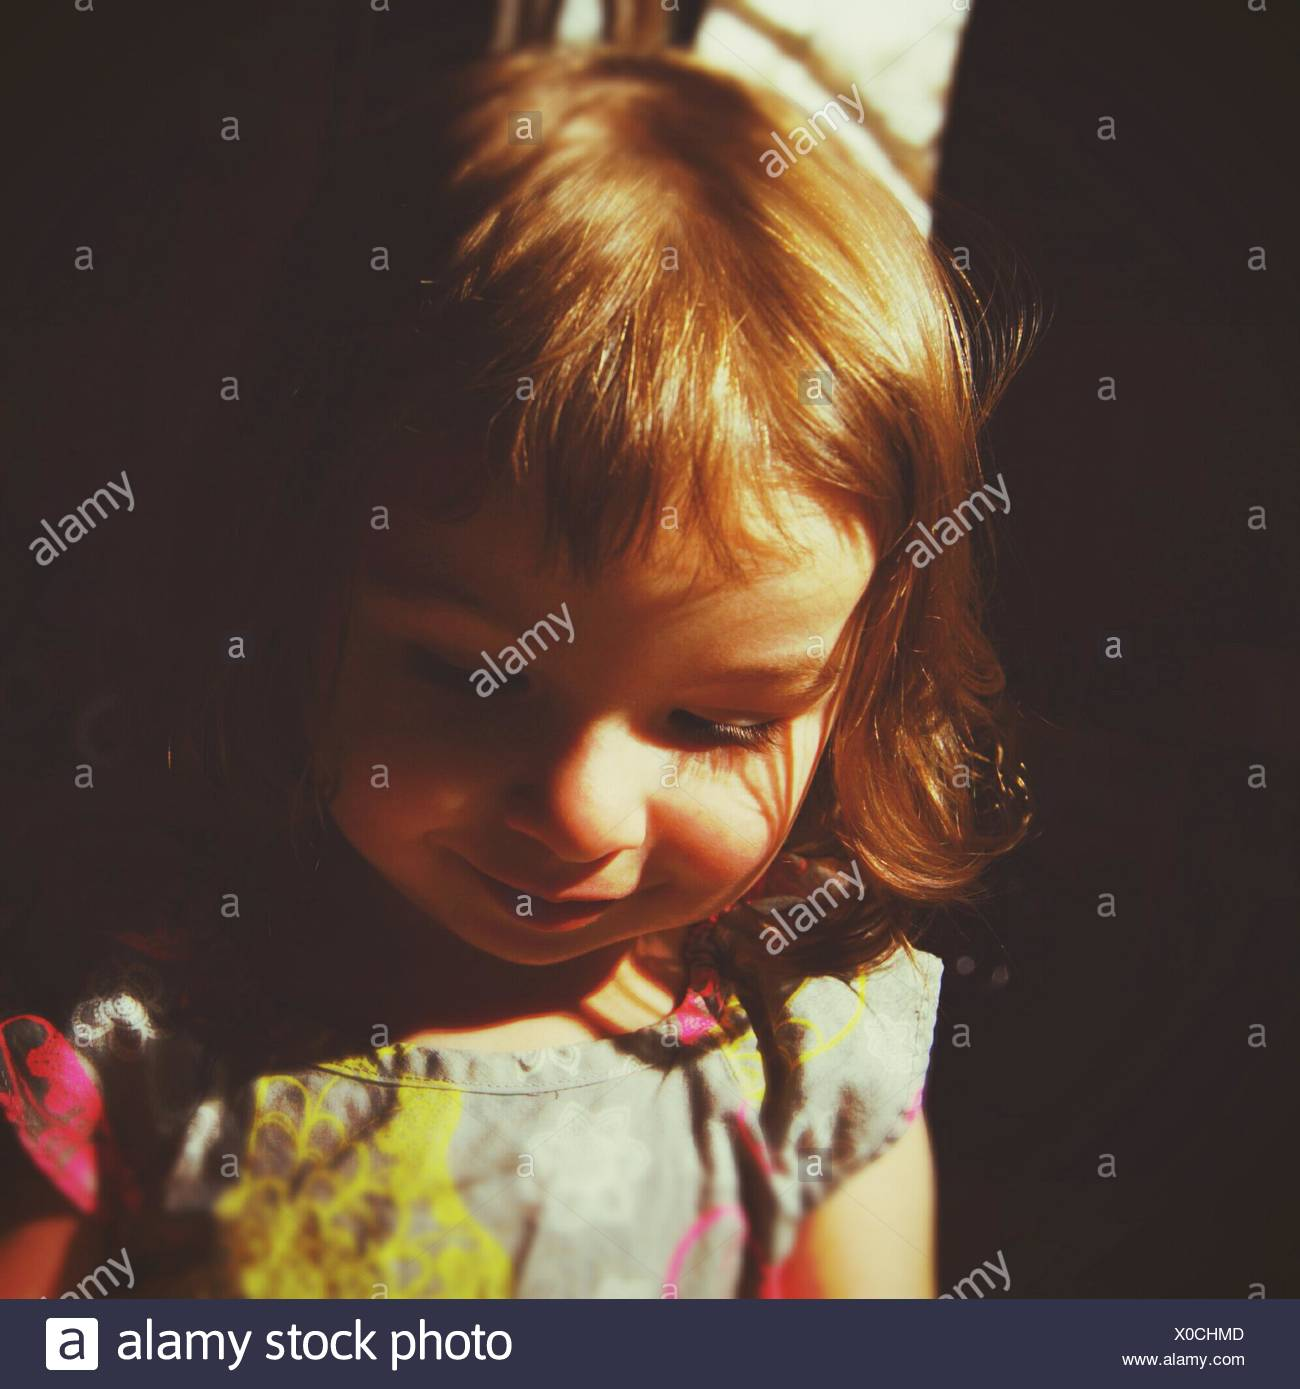 Portrait Of cute girl Smiling While Looking Down Photo Stock